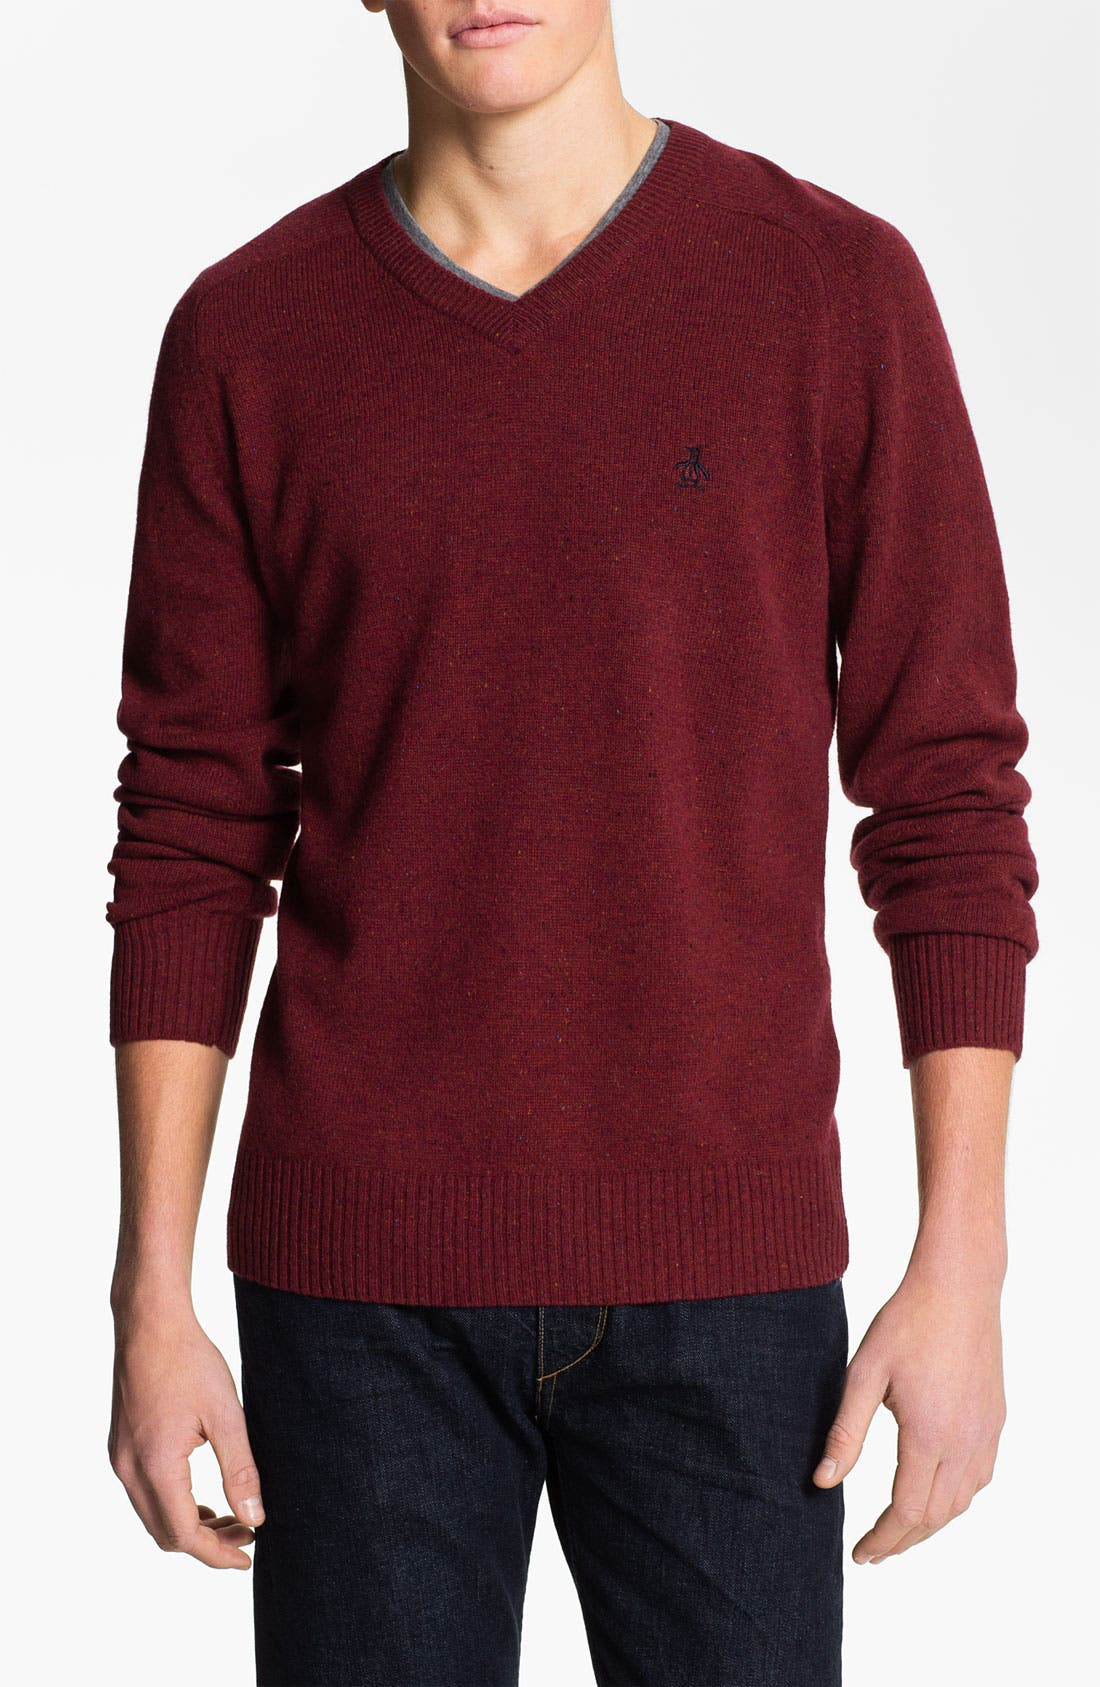 Alternate Image 1 Selected - Original Penguin Speckled Knit V-Neck Sweater